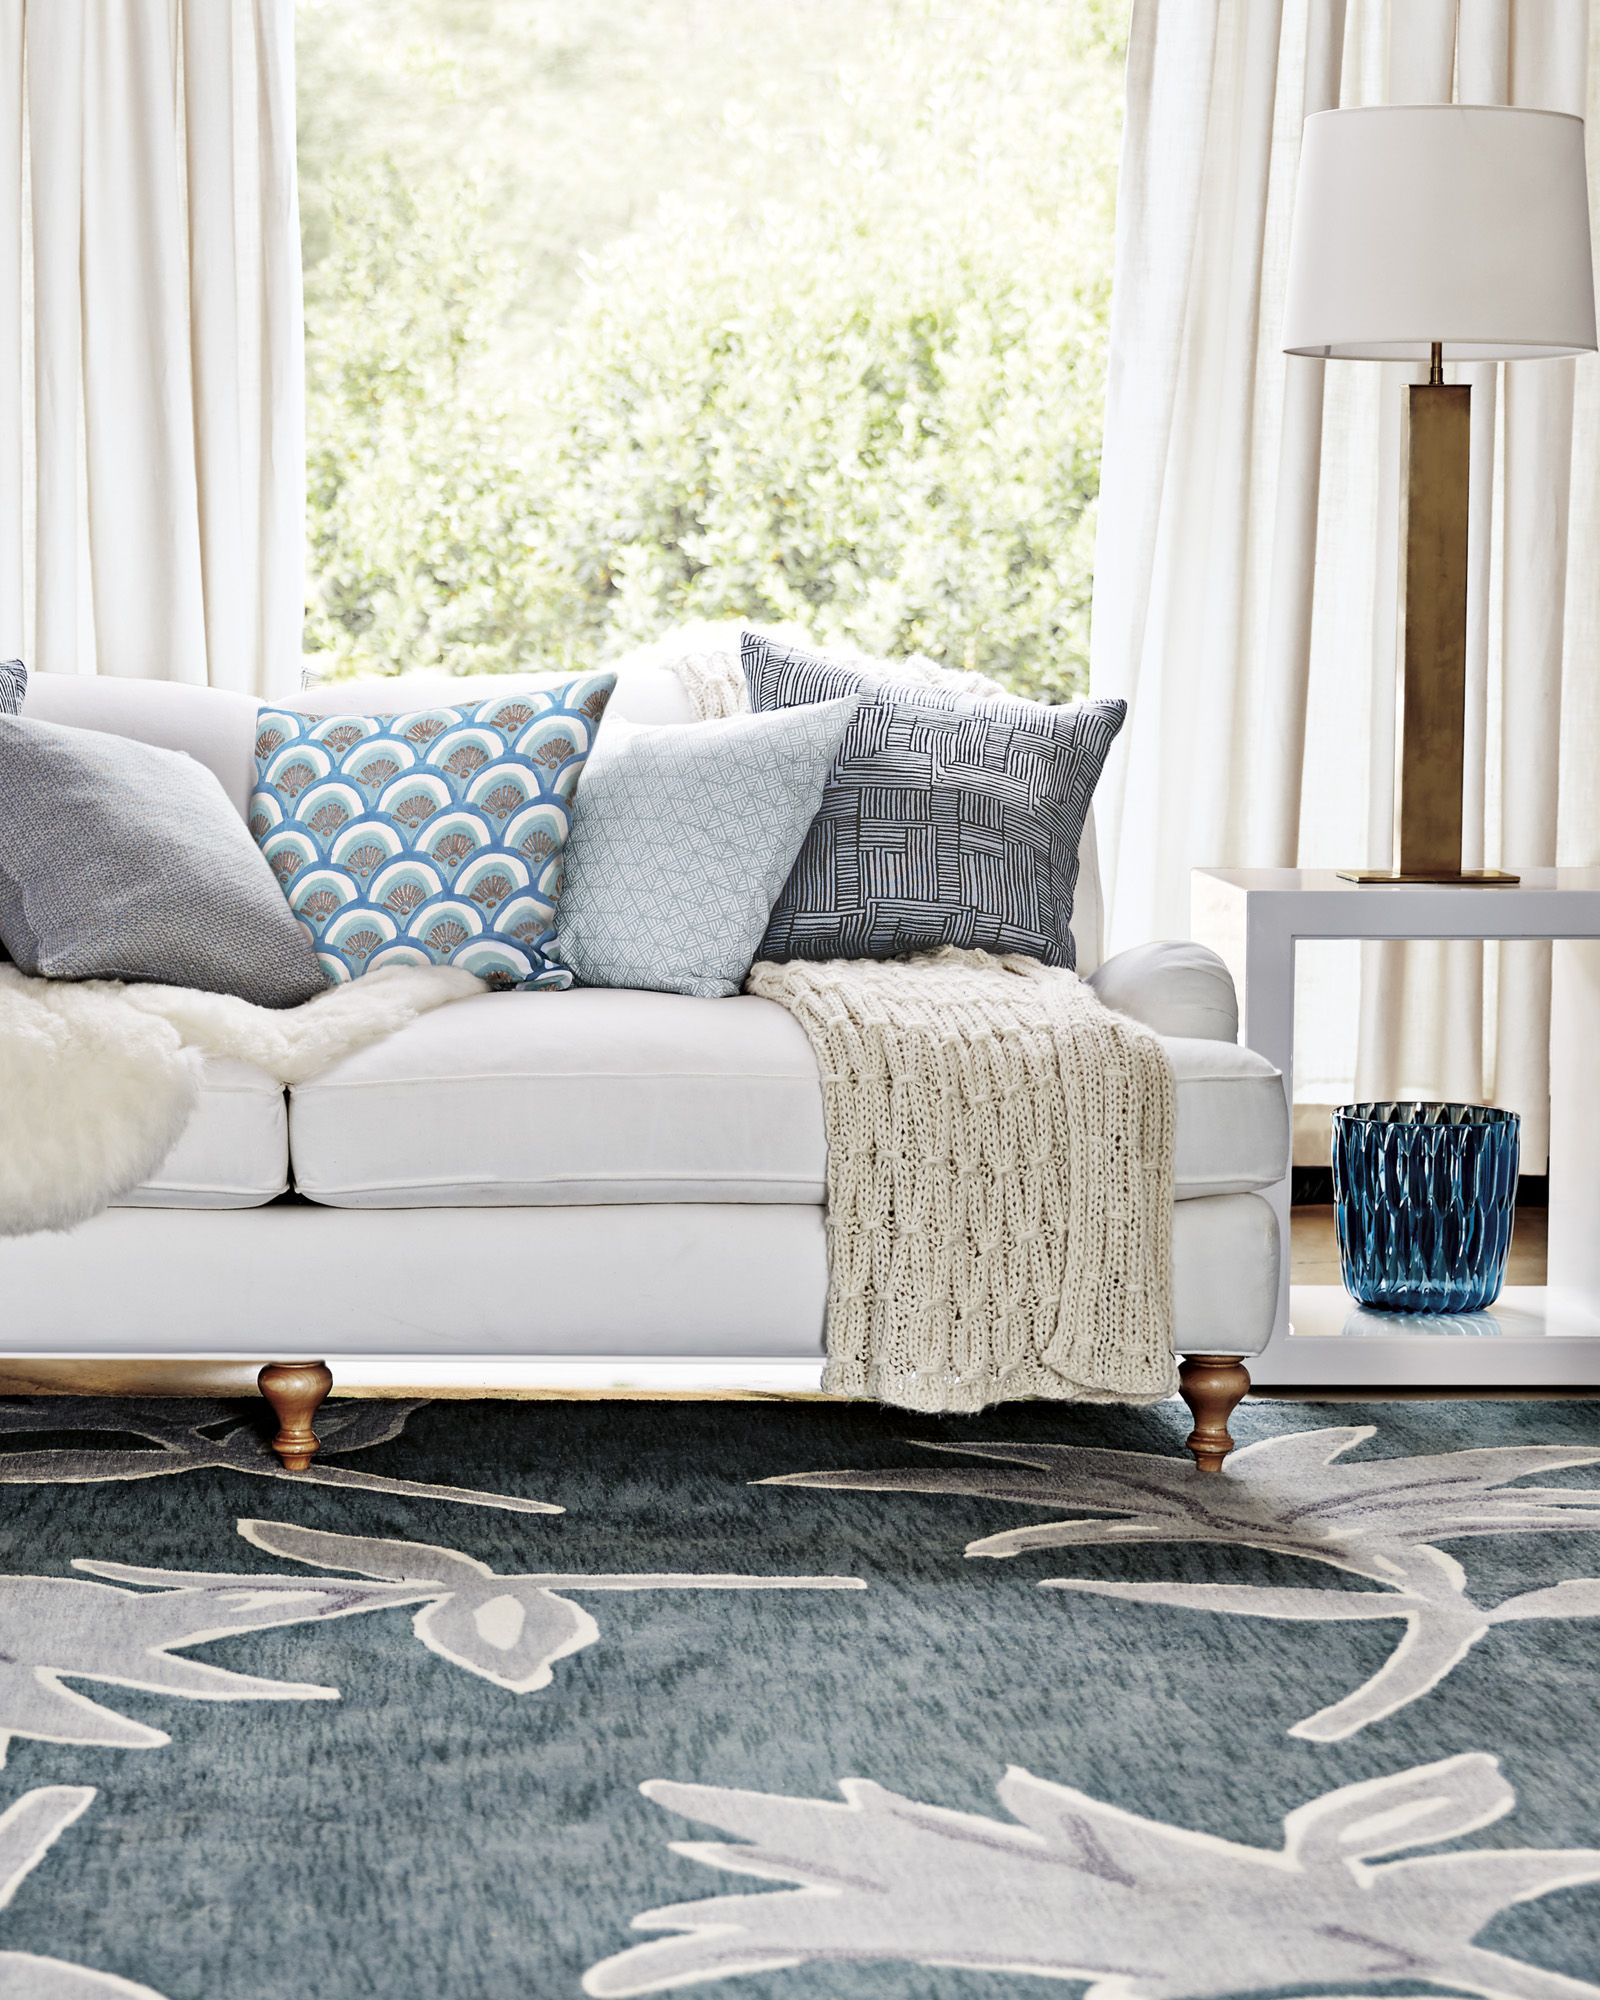 Shop The Miramar Sofa   Upholstered And The Rest Of Our Designer Sofas At  Serena And Lily.